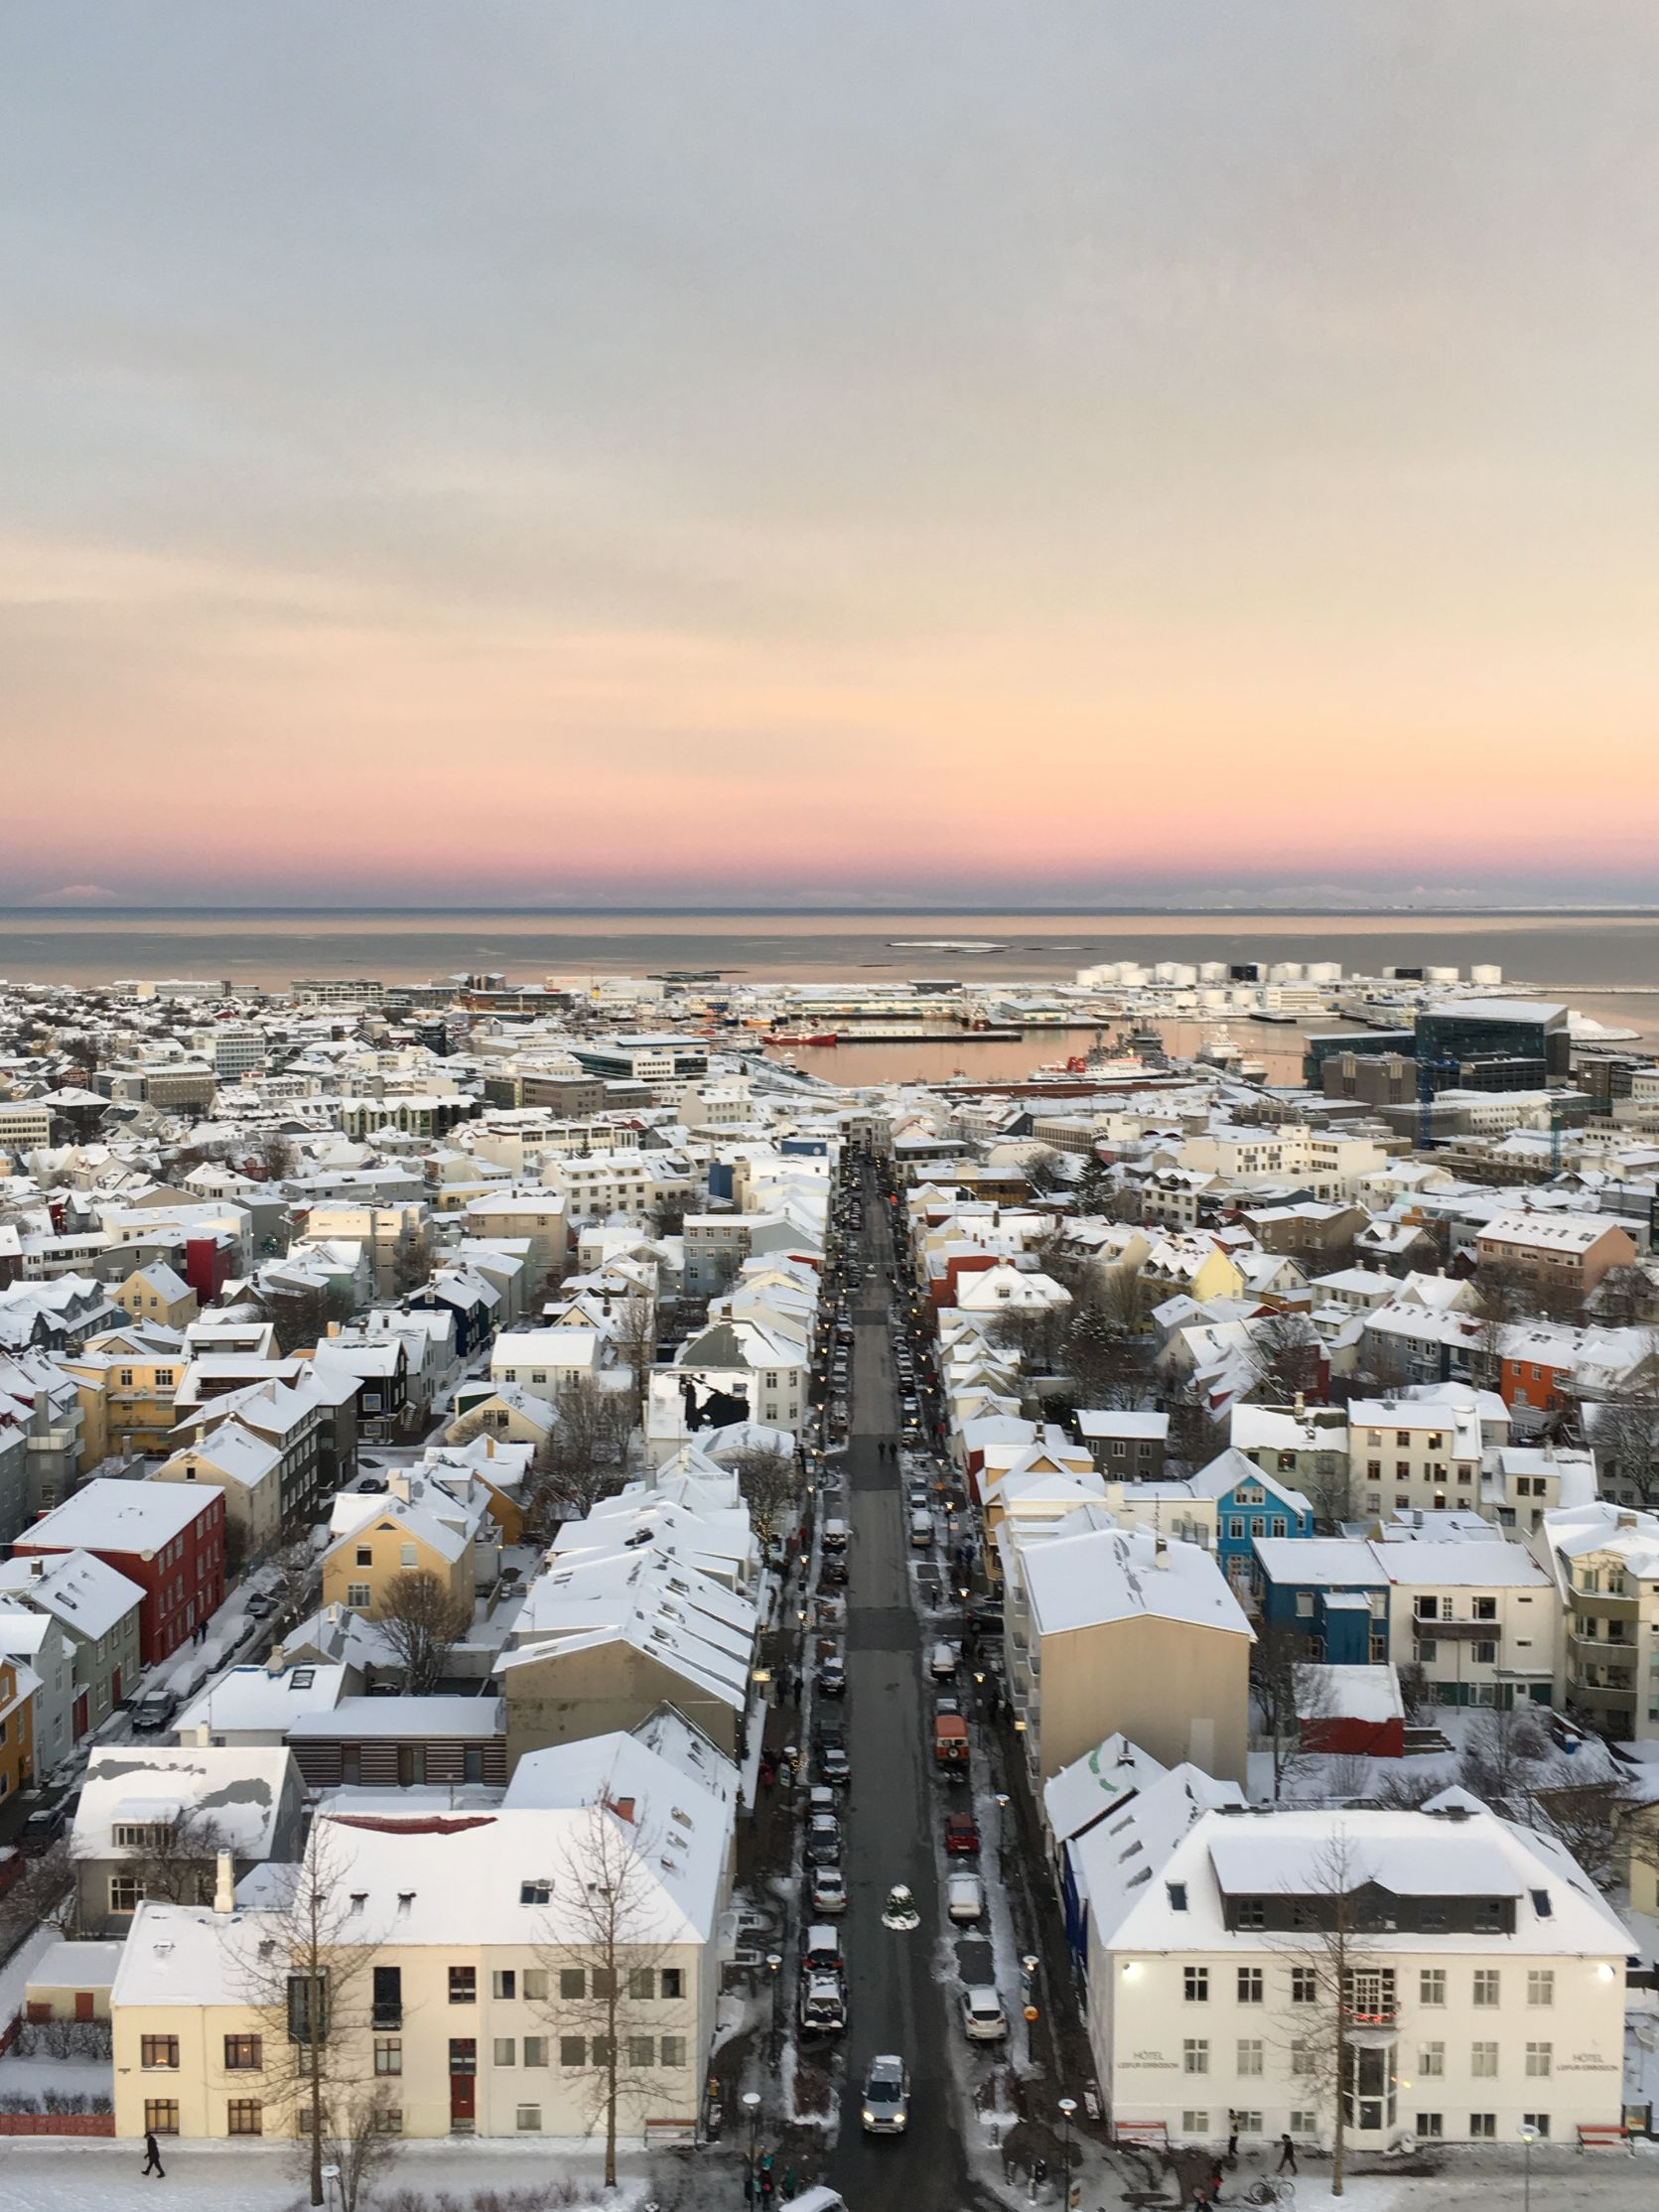 Aerial view of city of Reykjavik Iceland in the wintertime as the sun sets in the background - stop in 24 hour Iceland itinerary